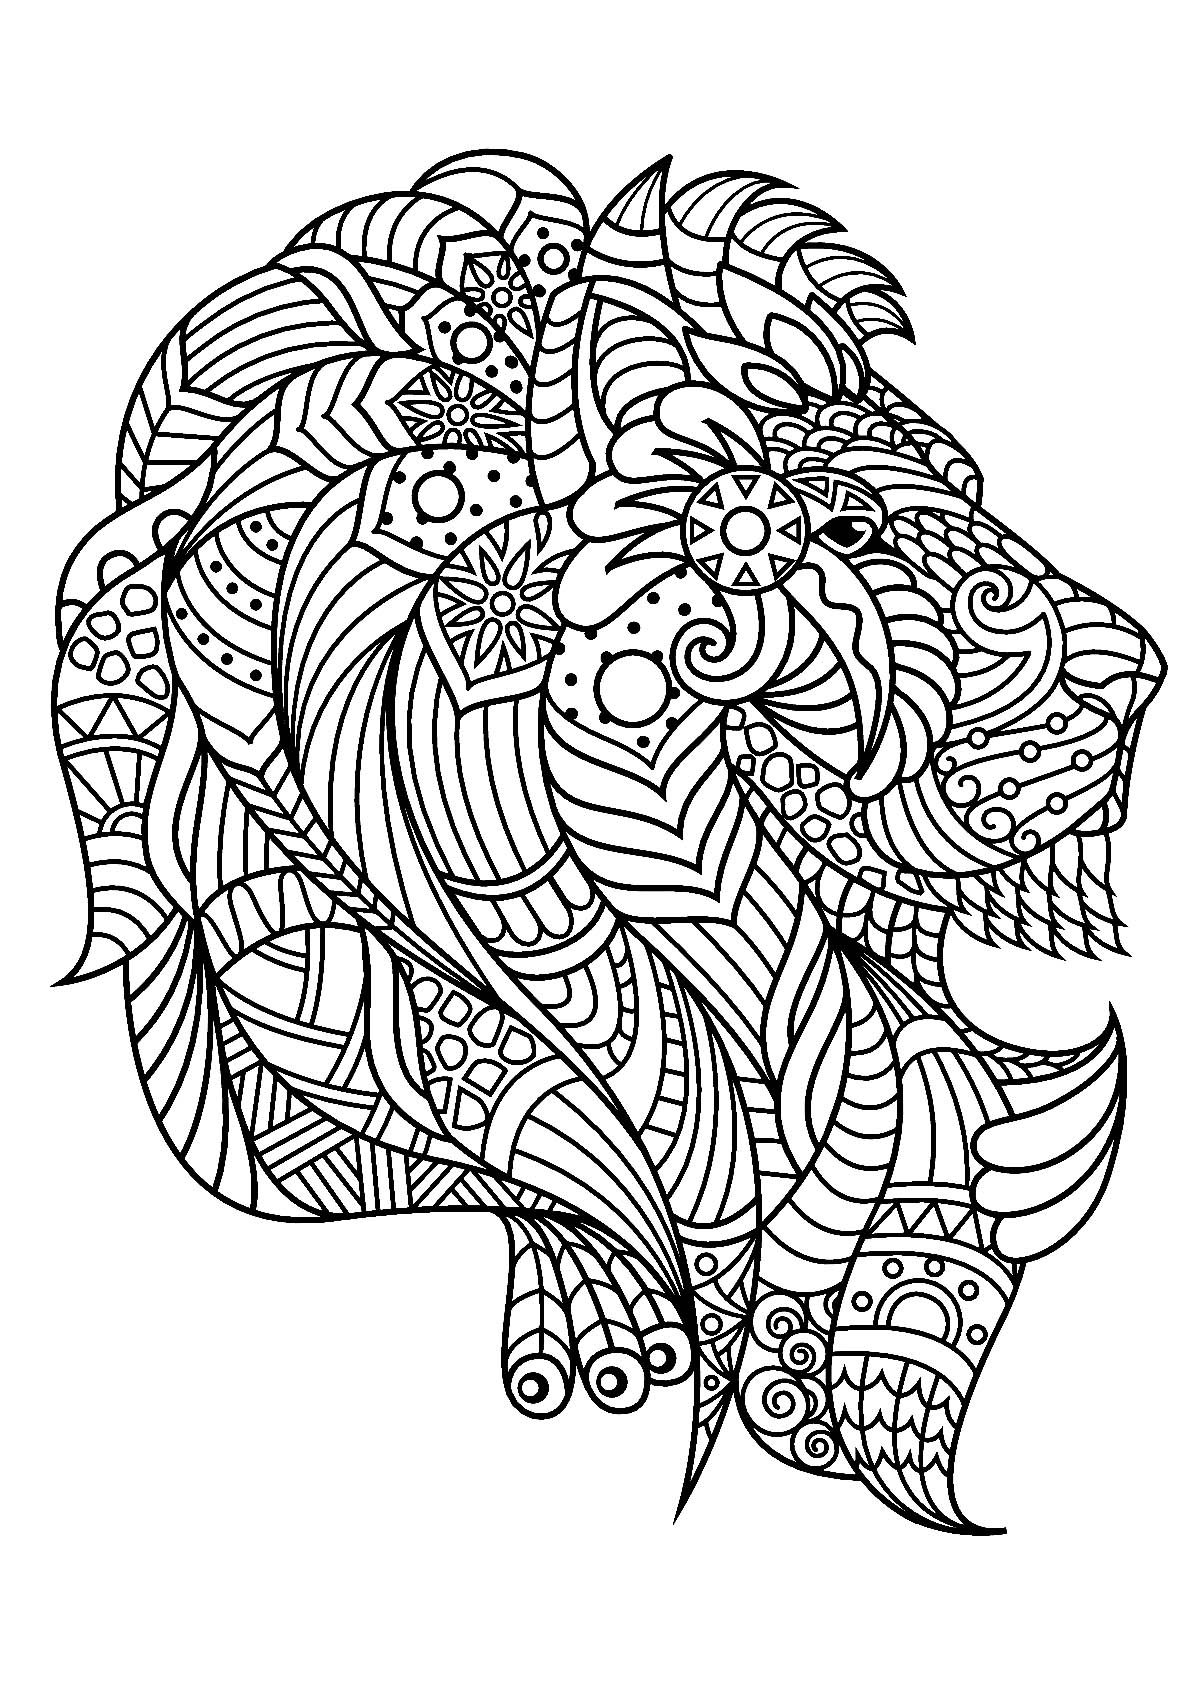 lion coloring sheets lion coloring pages to download and print for free coloring sheets lion